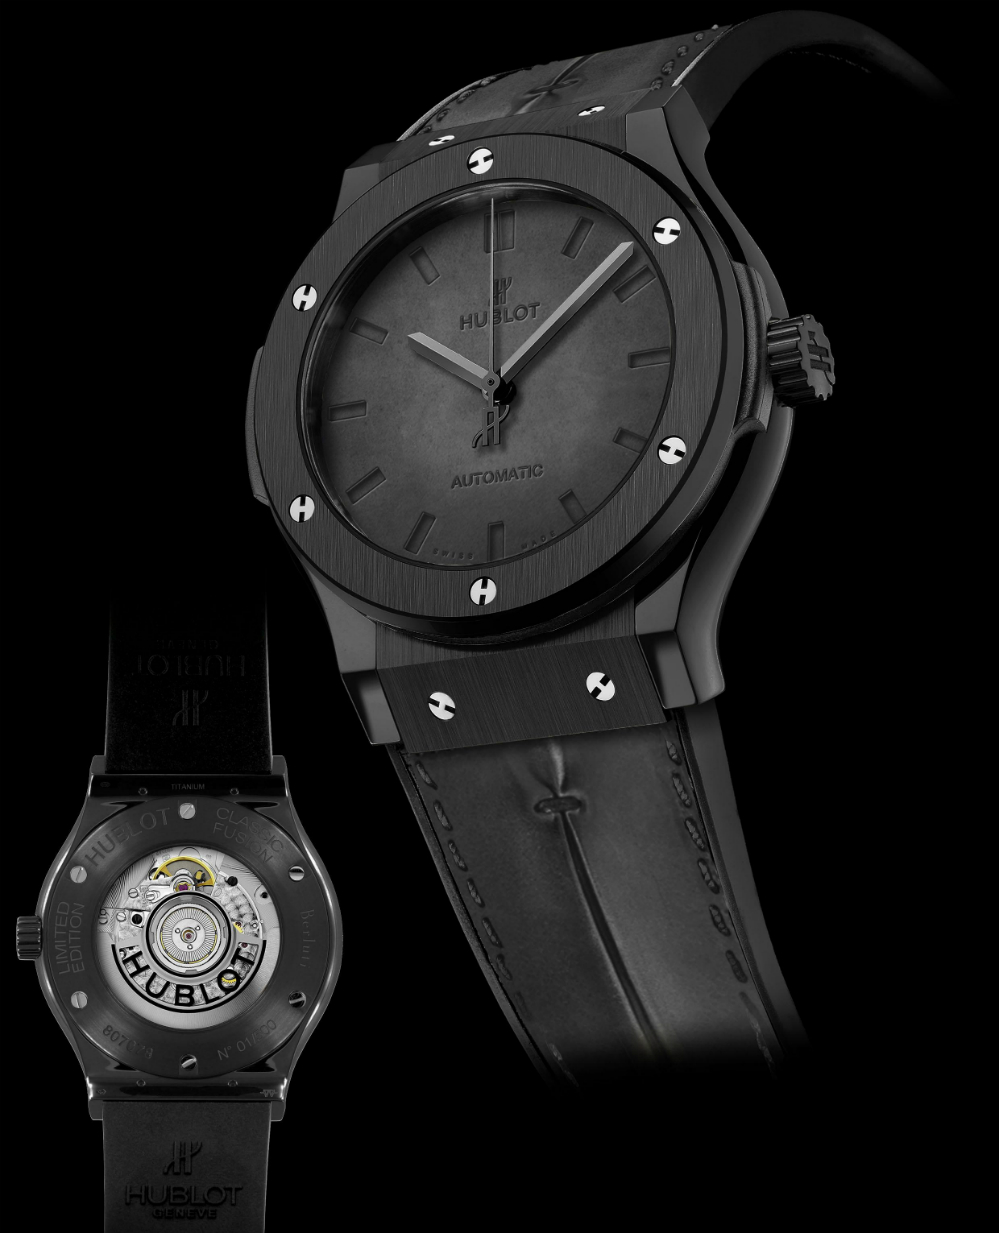 Hublot Classic Fusion Berluti Watch In All-Black & 'Scritto' Watch Releases